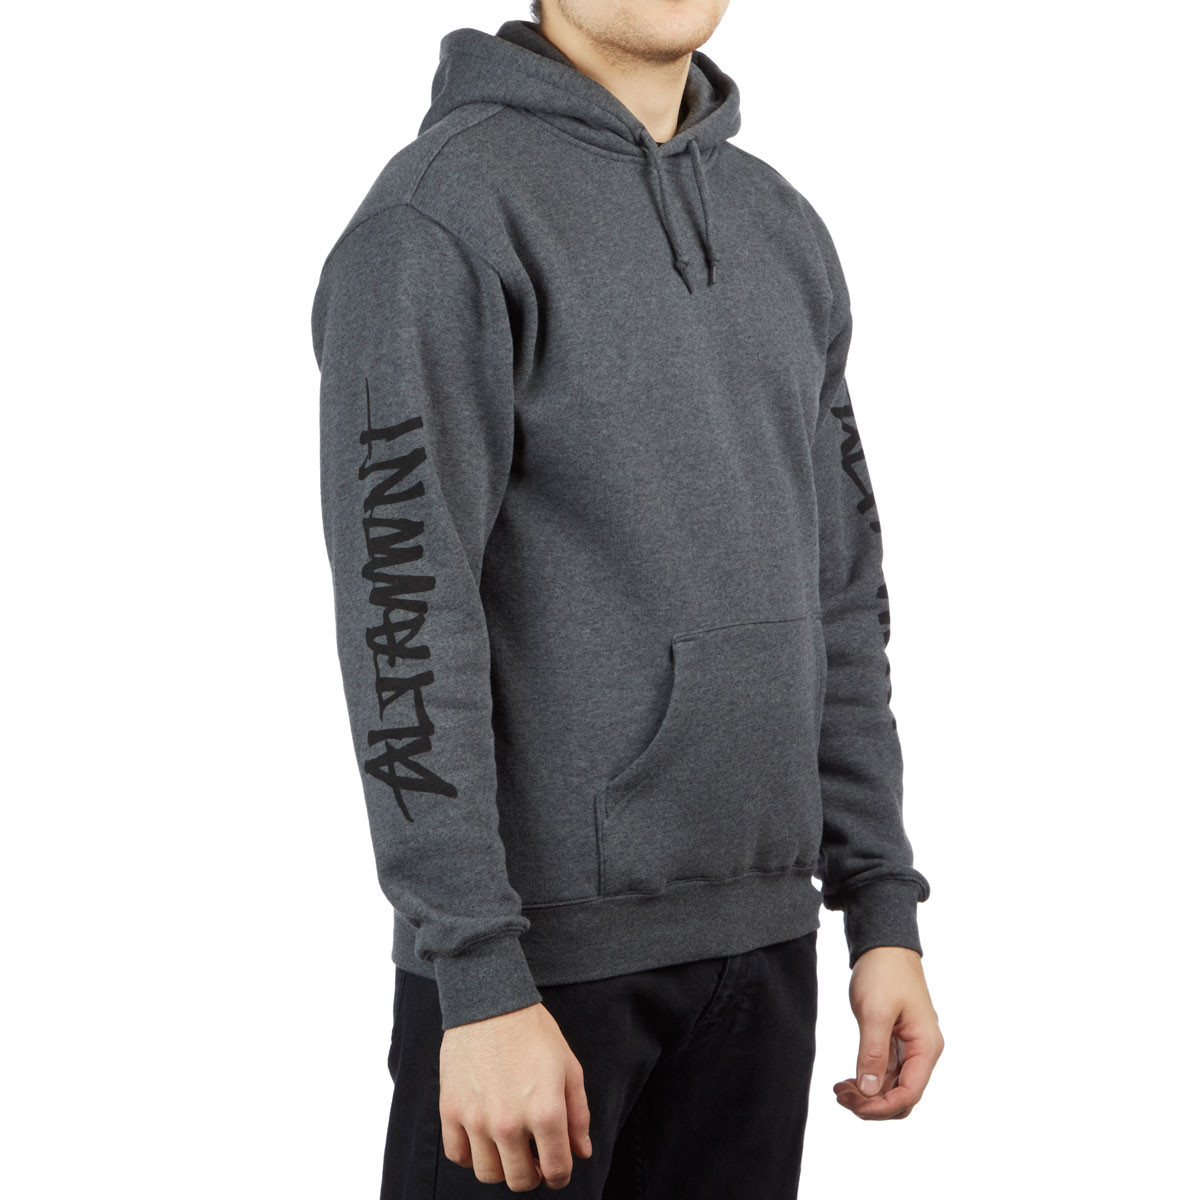 Altamont One Liner Hoodie Charcoal